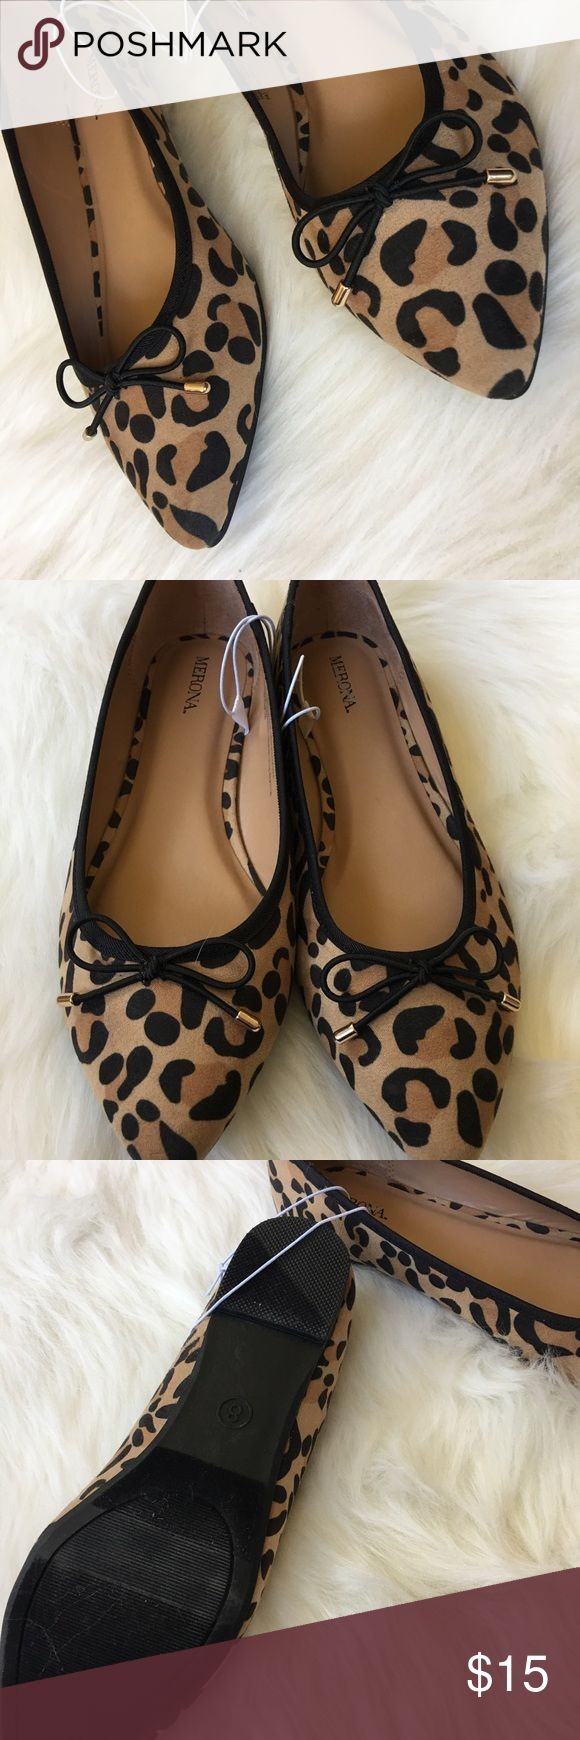 NWT 🐯Adorable Leopard Pointed Ballet Flats w/Bows Adorable pointed toe Ballet flat with bow detail. New with tags. Merona Shoes Flats & Loafers